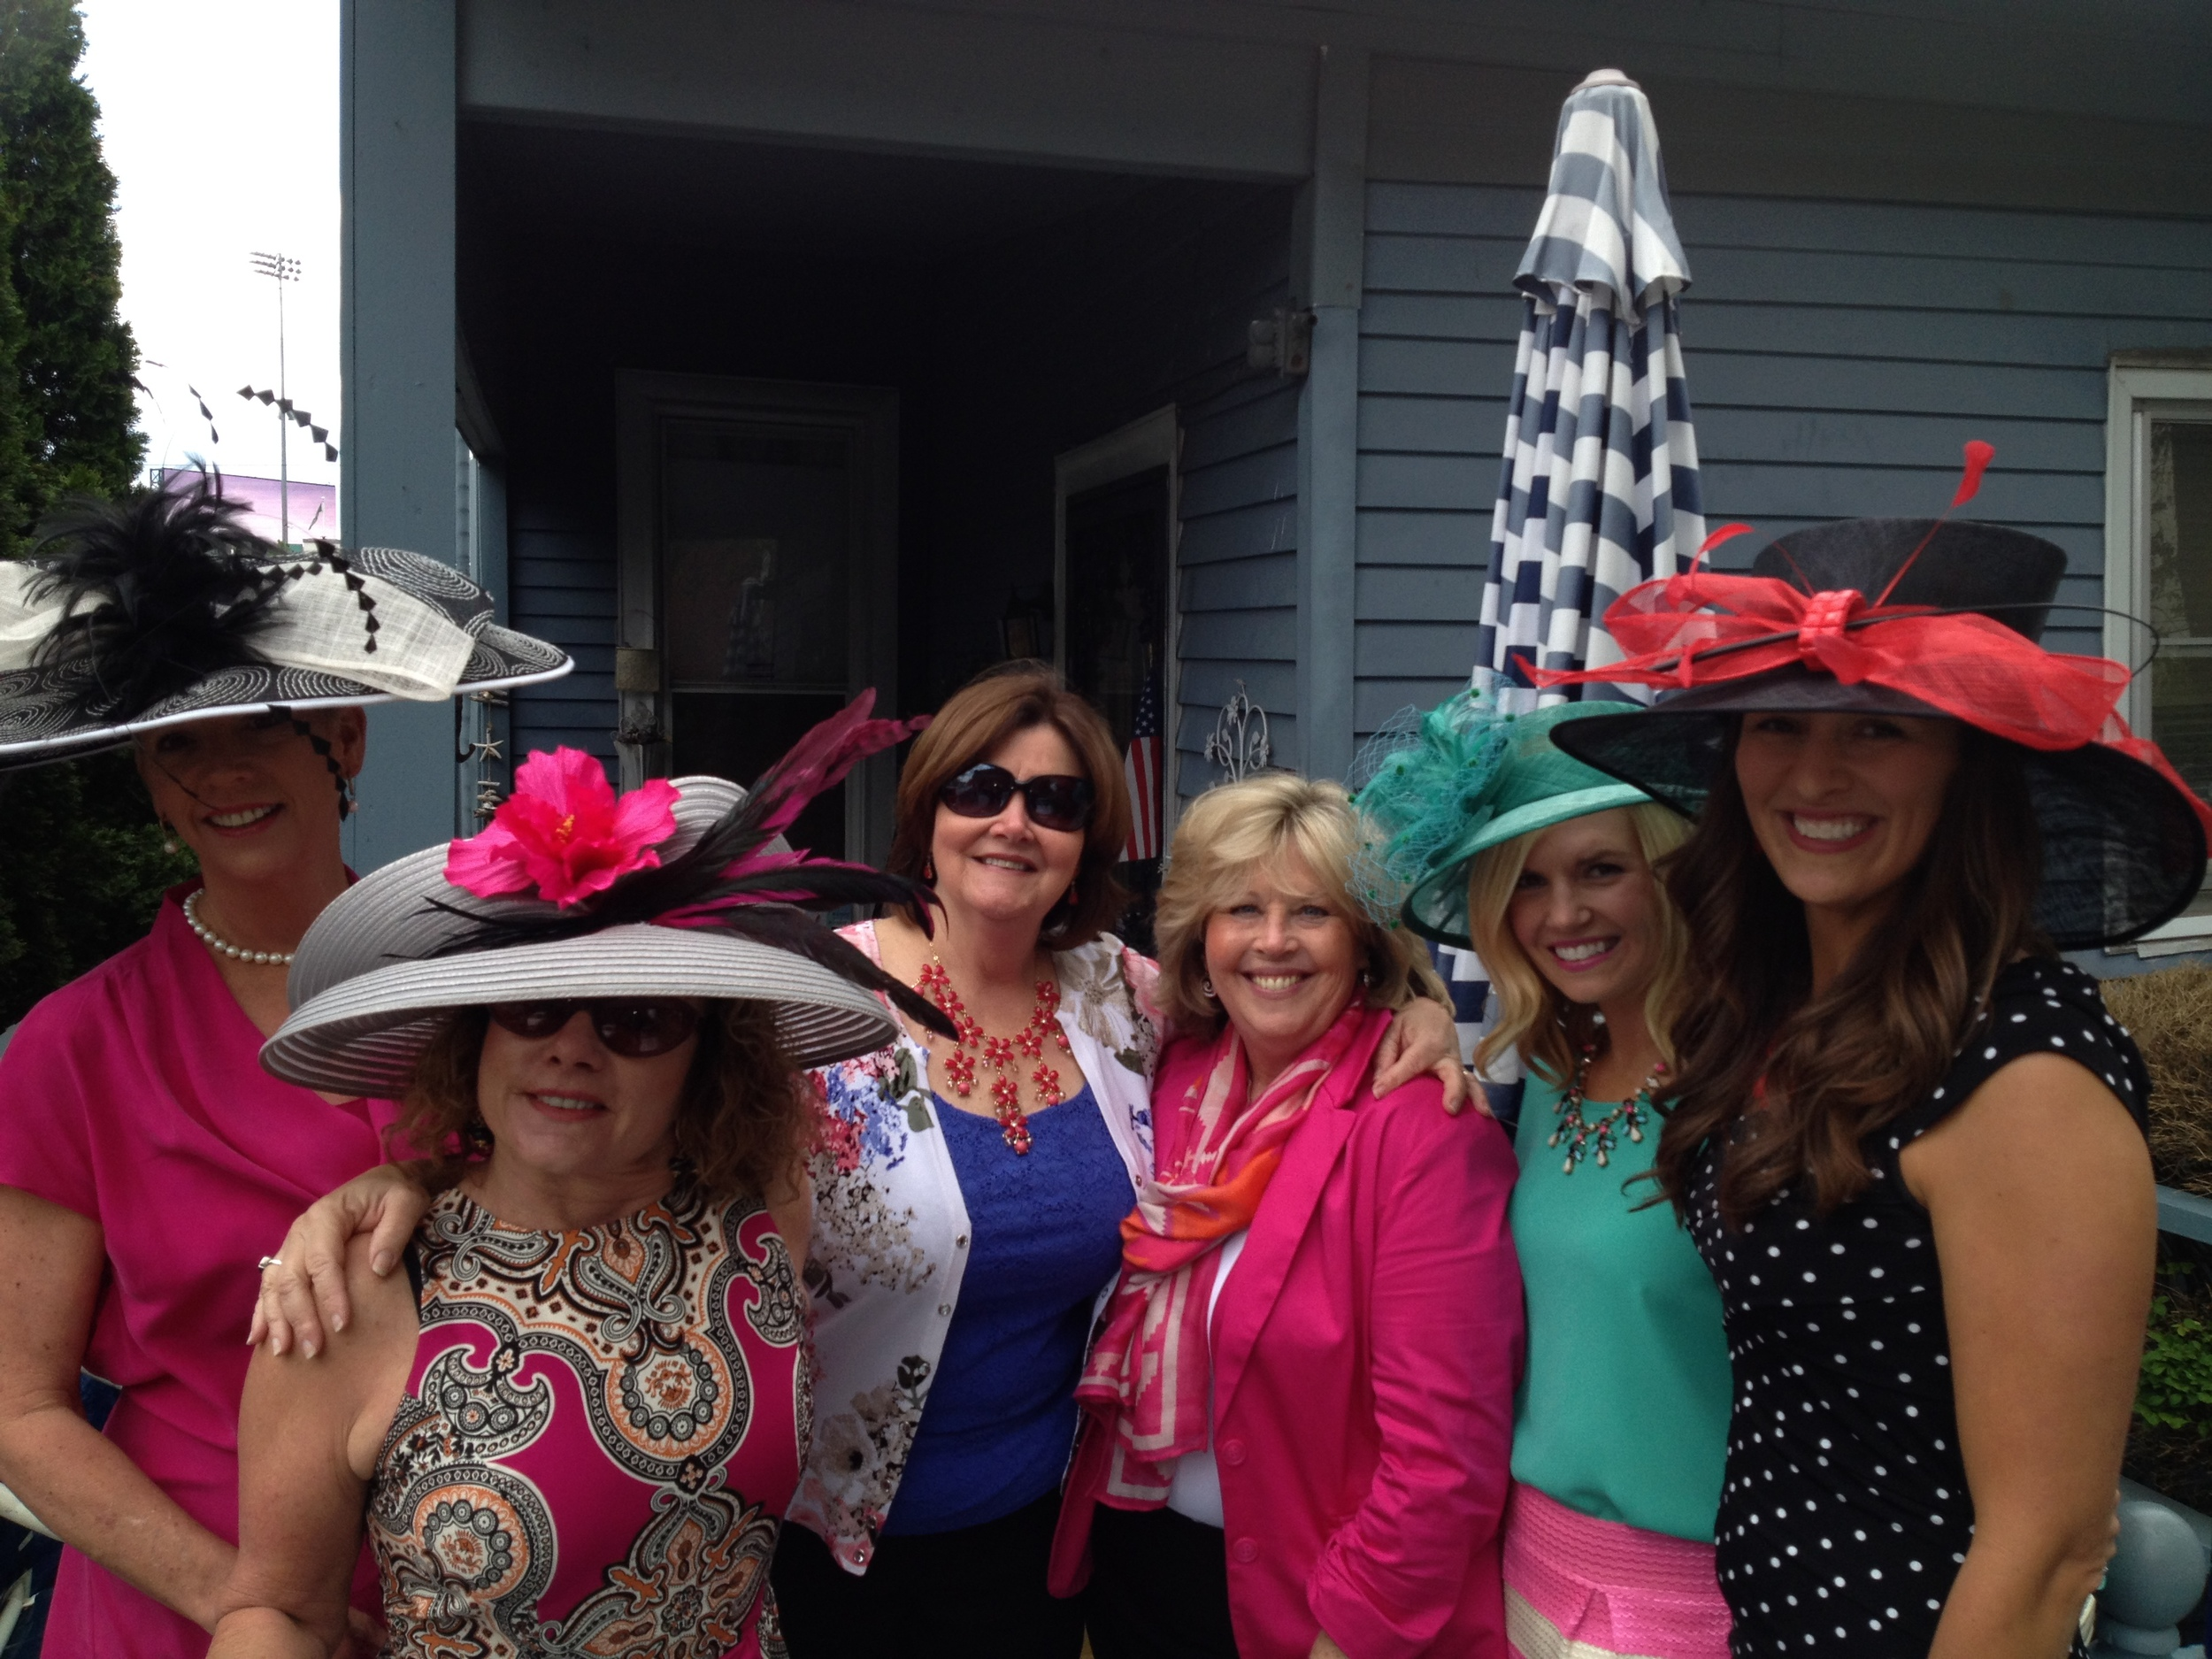 We met up at Lee's then walked the 2 blocks to Churchill Downs. L-R: Kelly, Joy, Donna, Eileen, Leah's friend & Leah (Donna's daughter)